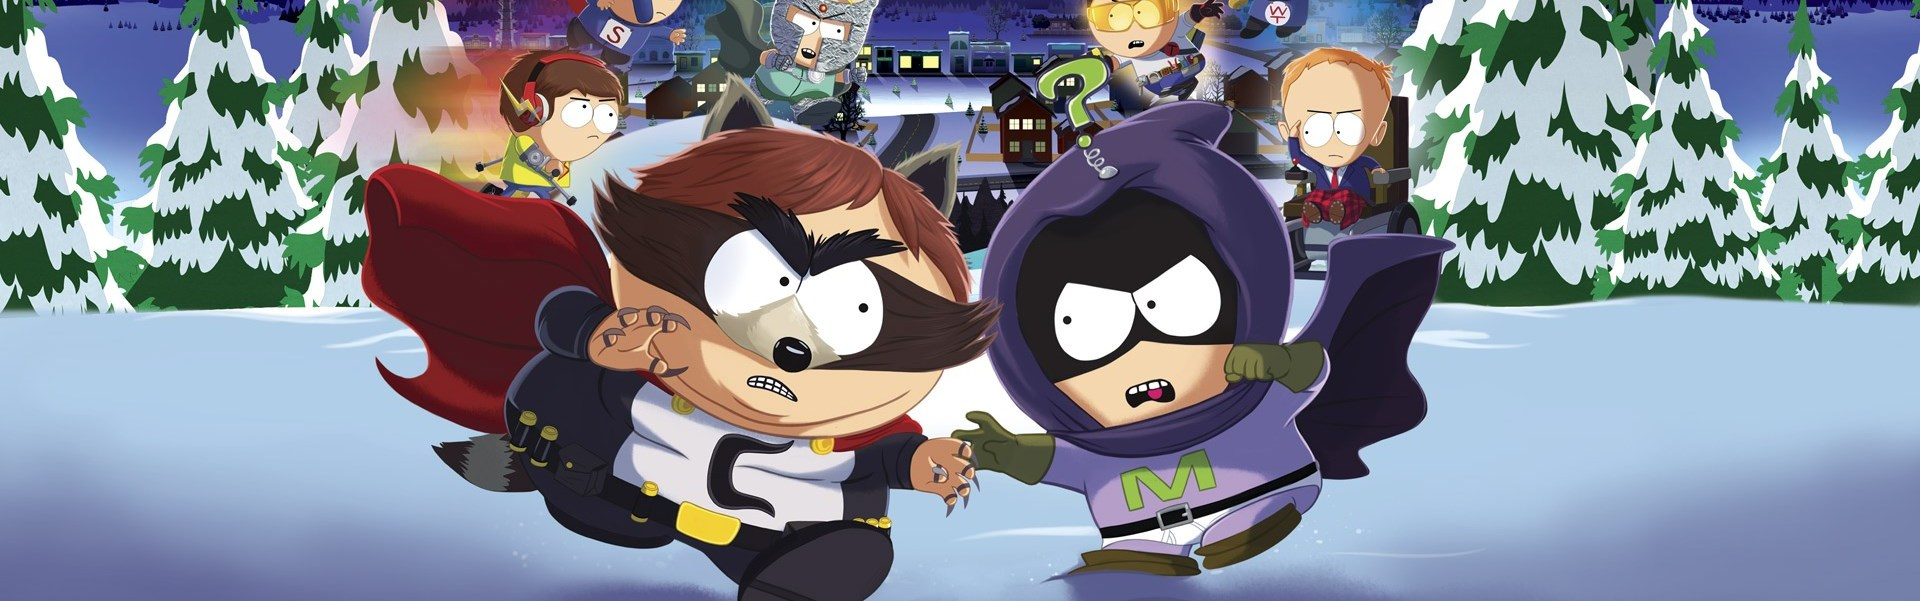 South Park: The Fractured But Whole - Season Pass (DLC) Uplay Key EUROPE